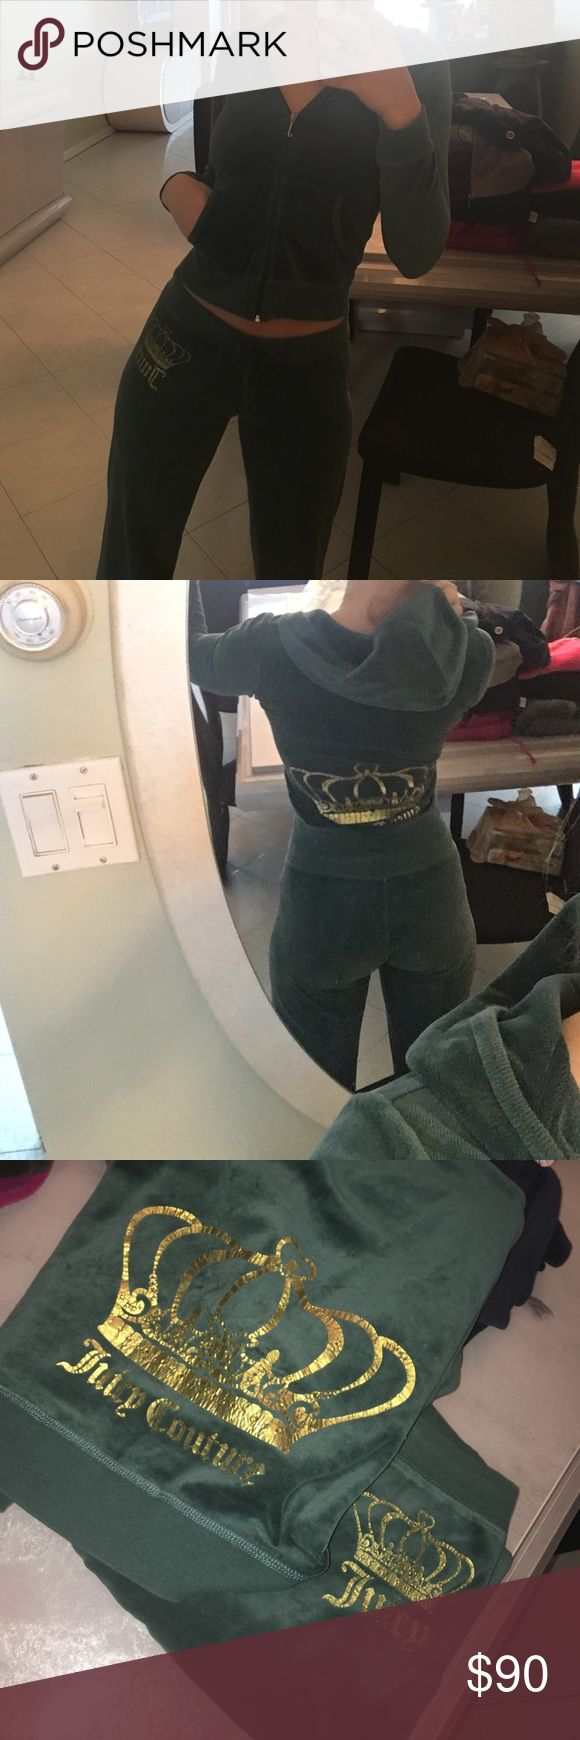 Juicy Couture Sweatsuit!! Perfect condition!!  Amazing fit! Juicy Couture Other